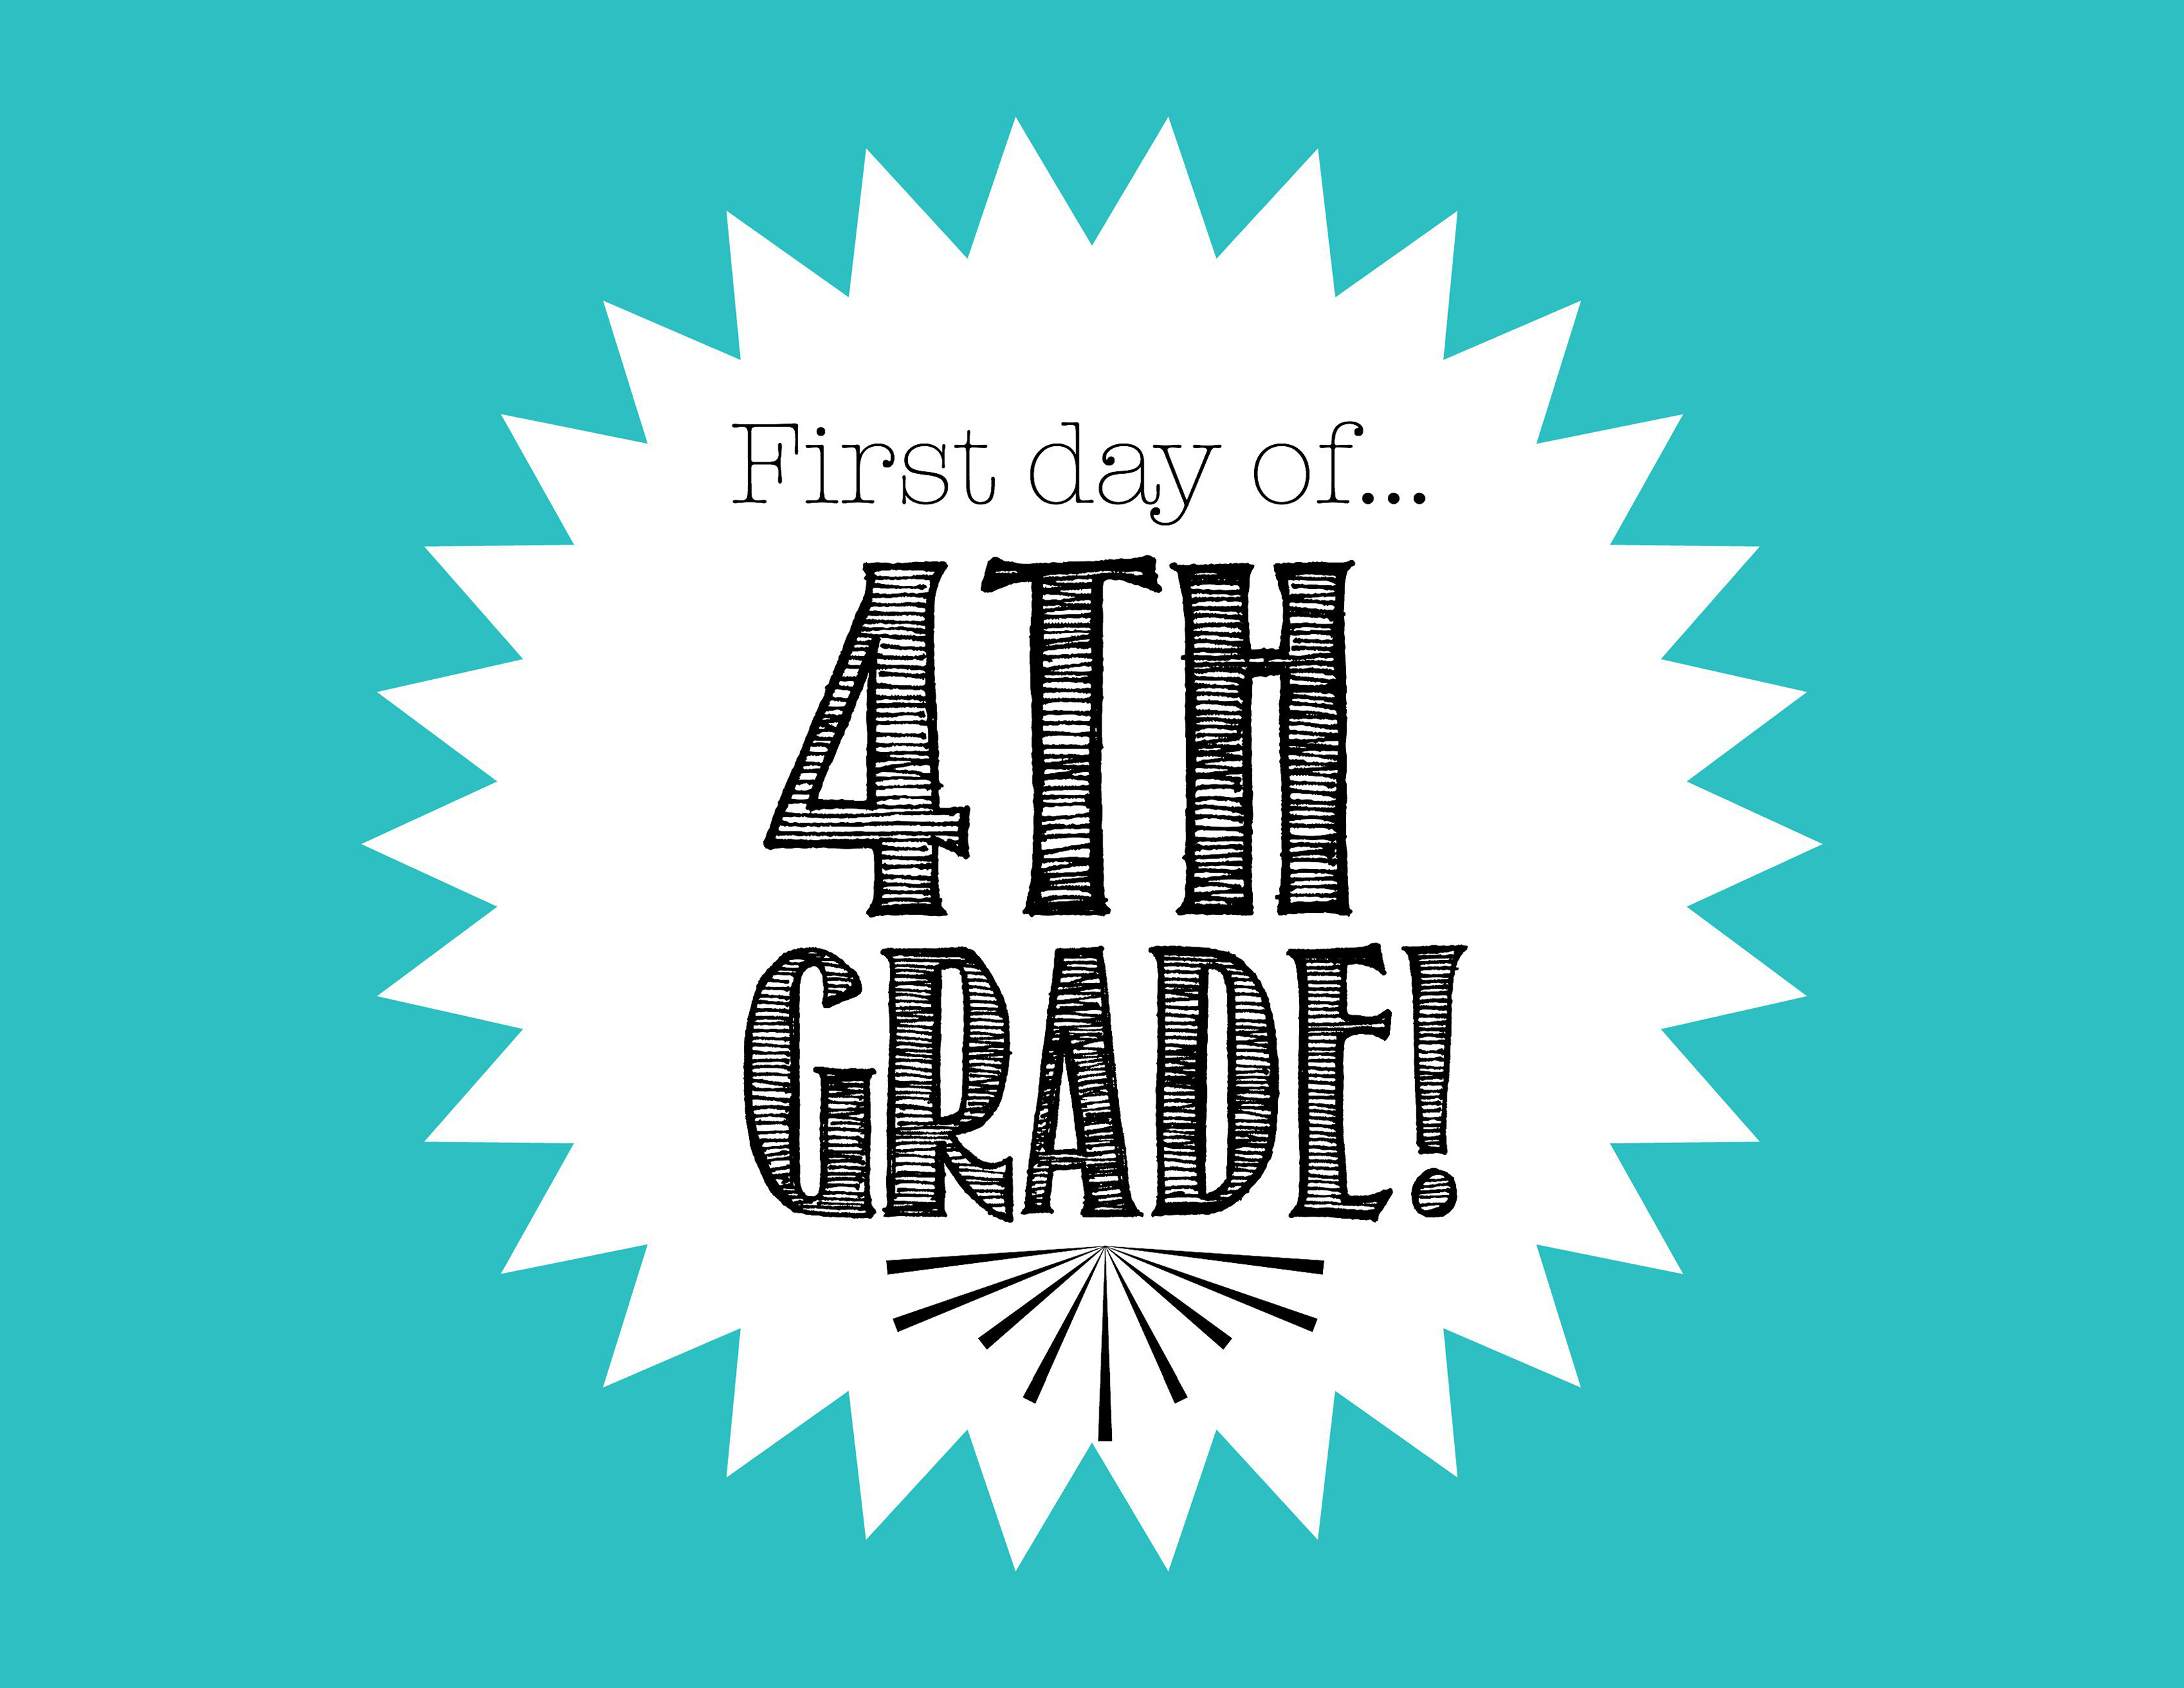 Free First Day Of School Printables - First Day Of 3Rd Grade Free Printable